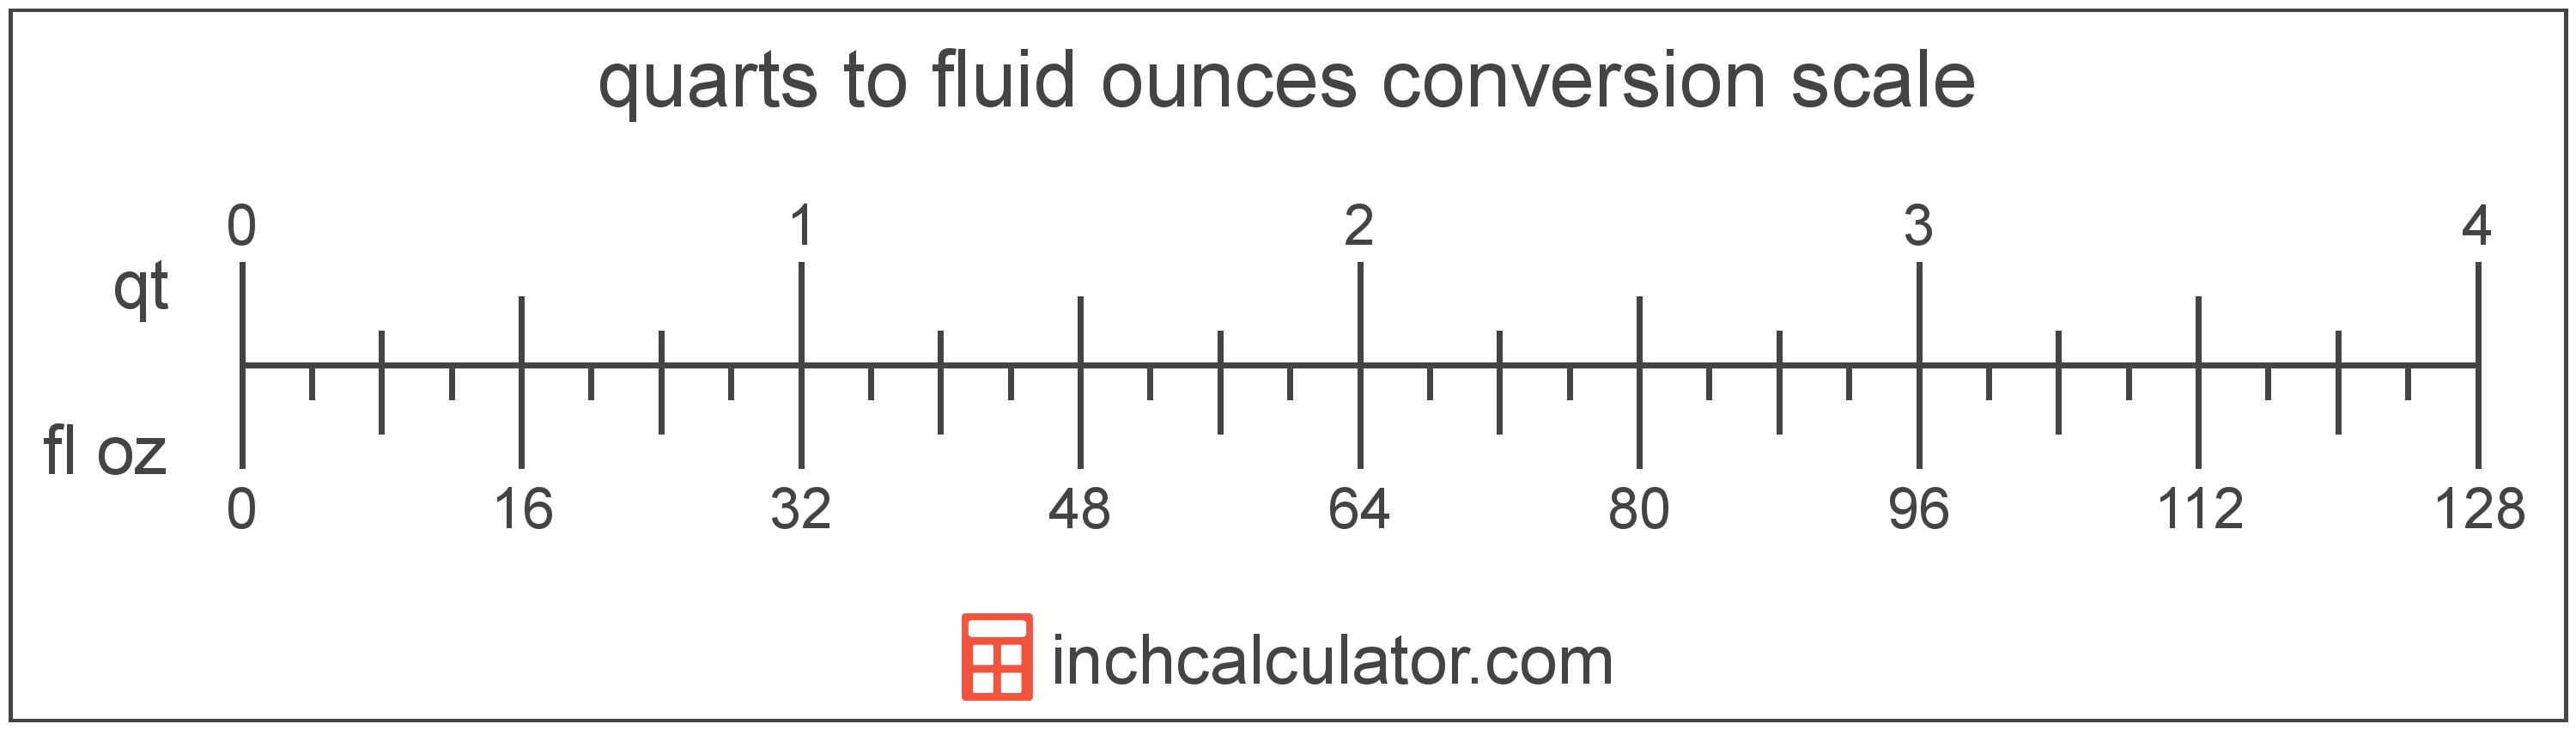 conversion scale showing quarts and equivalent fluid ounces volume values